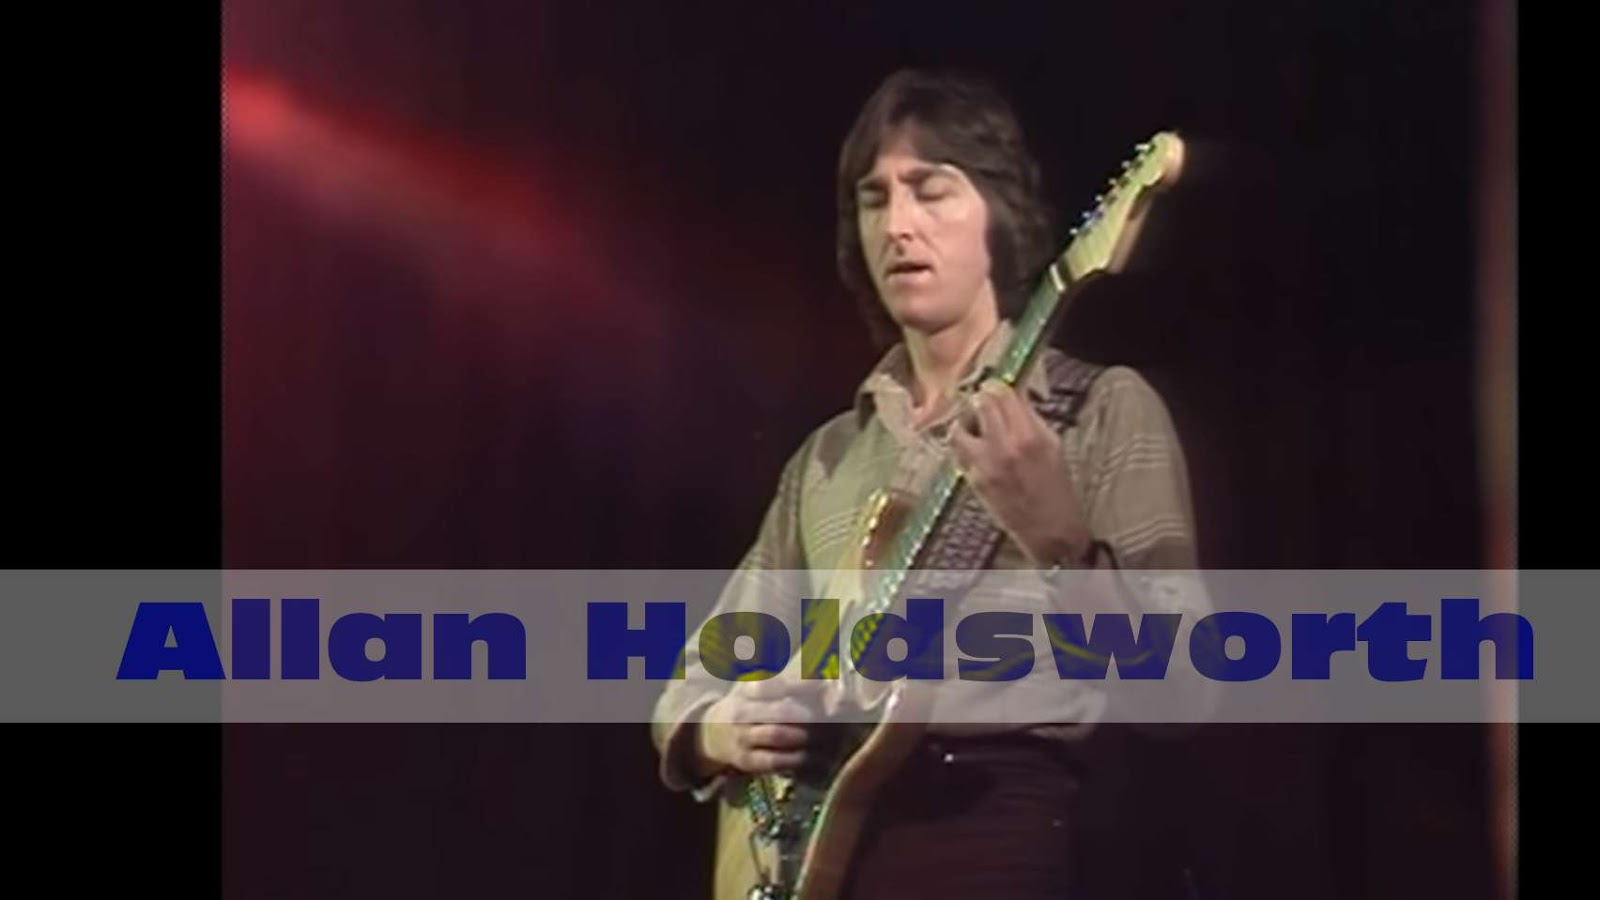 Allan Holdsworth Allan Holdsworth Bruford Beelzebub Forever Until